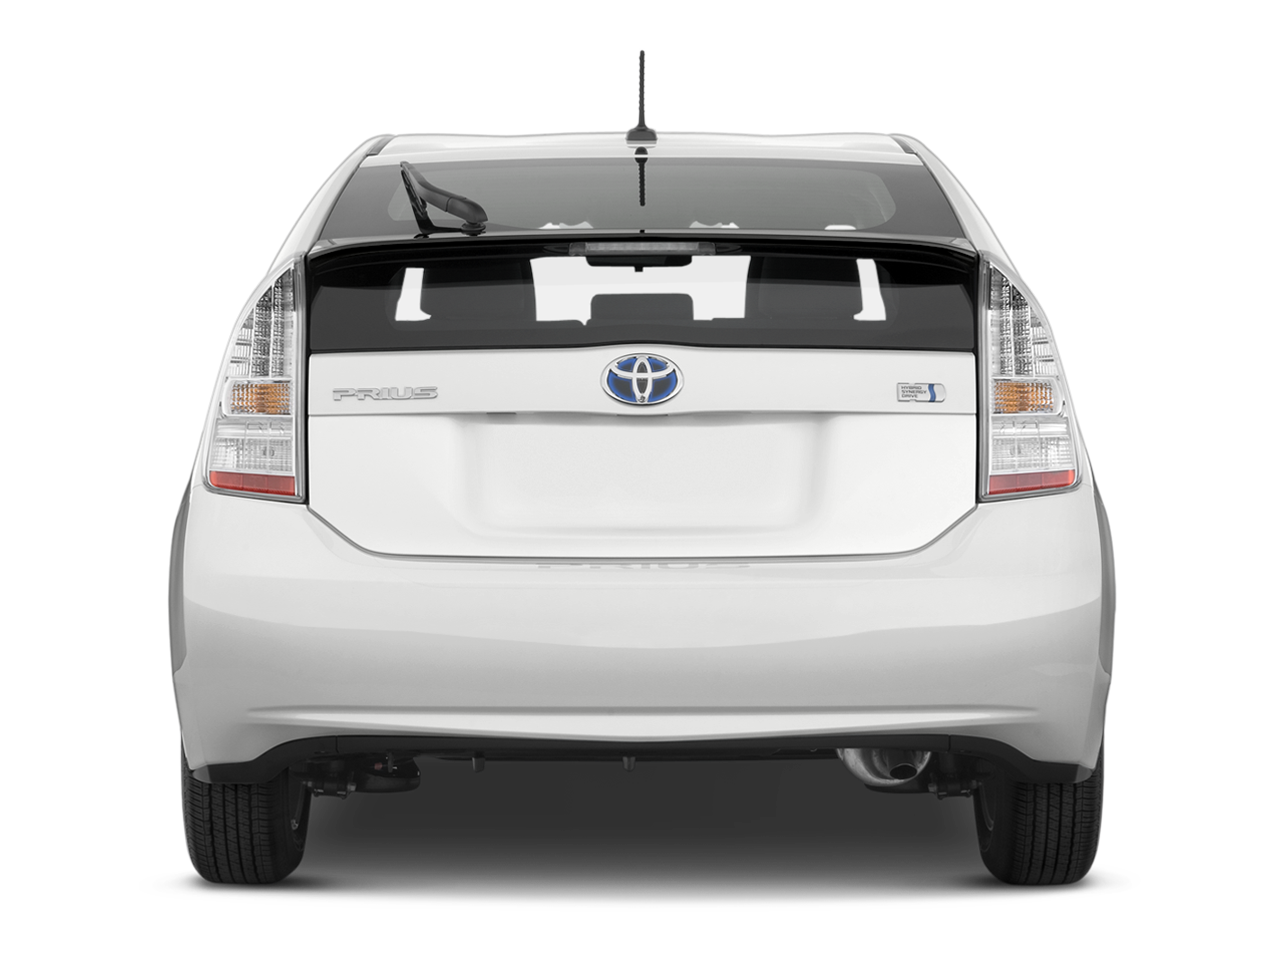 2010 Toyota Prius Fuel Efficient News Hybrid Cars And